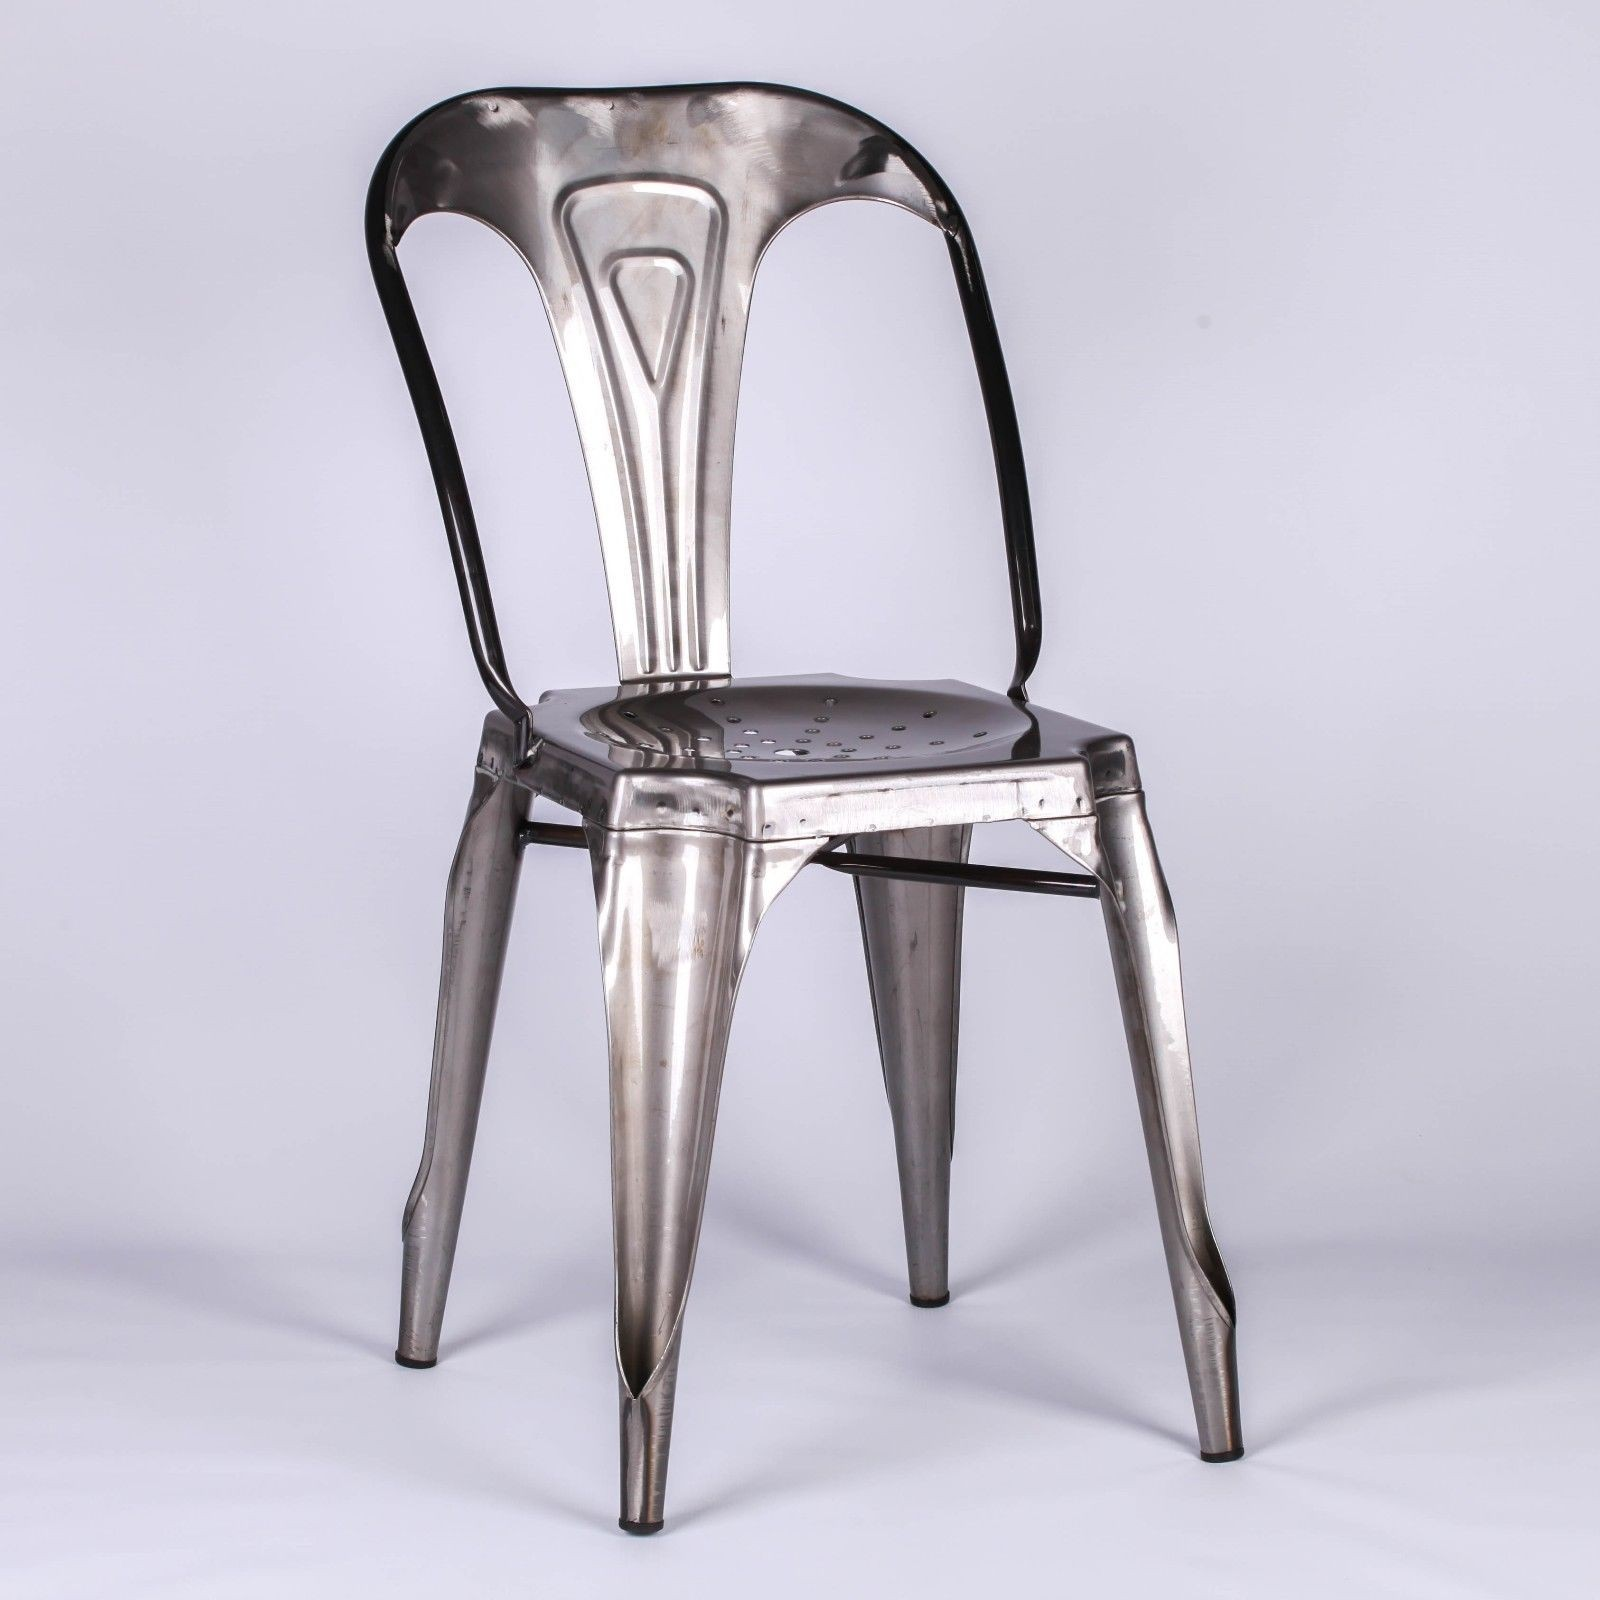 Metal Dining Chairs Industrial Tolix Inspired Industrial Style Cafe Metal Dining Chair